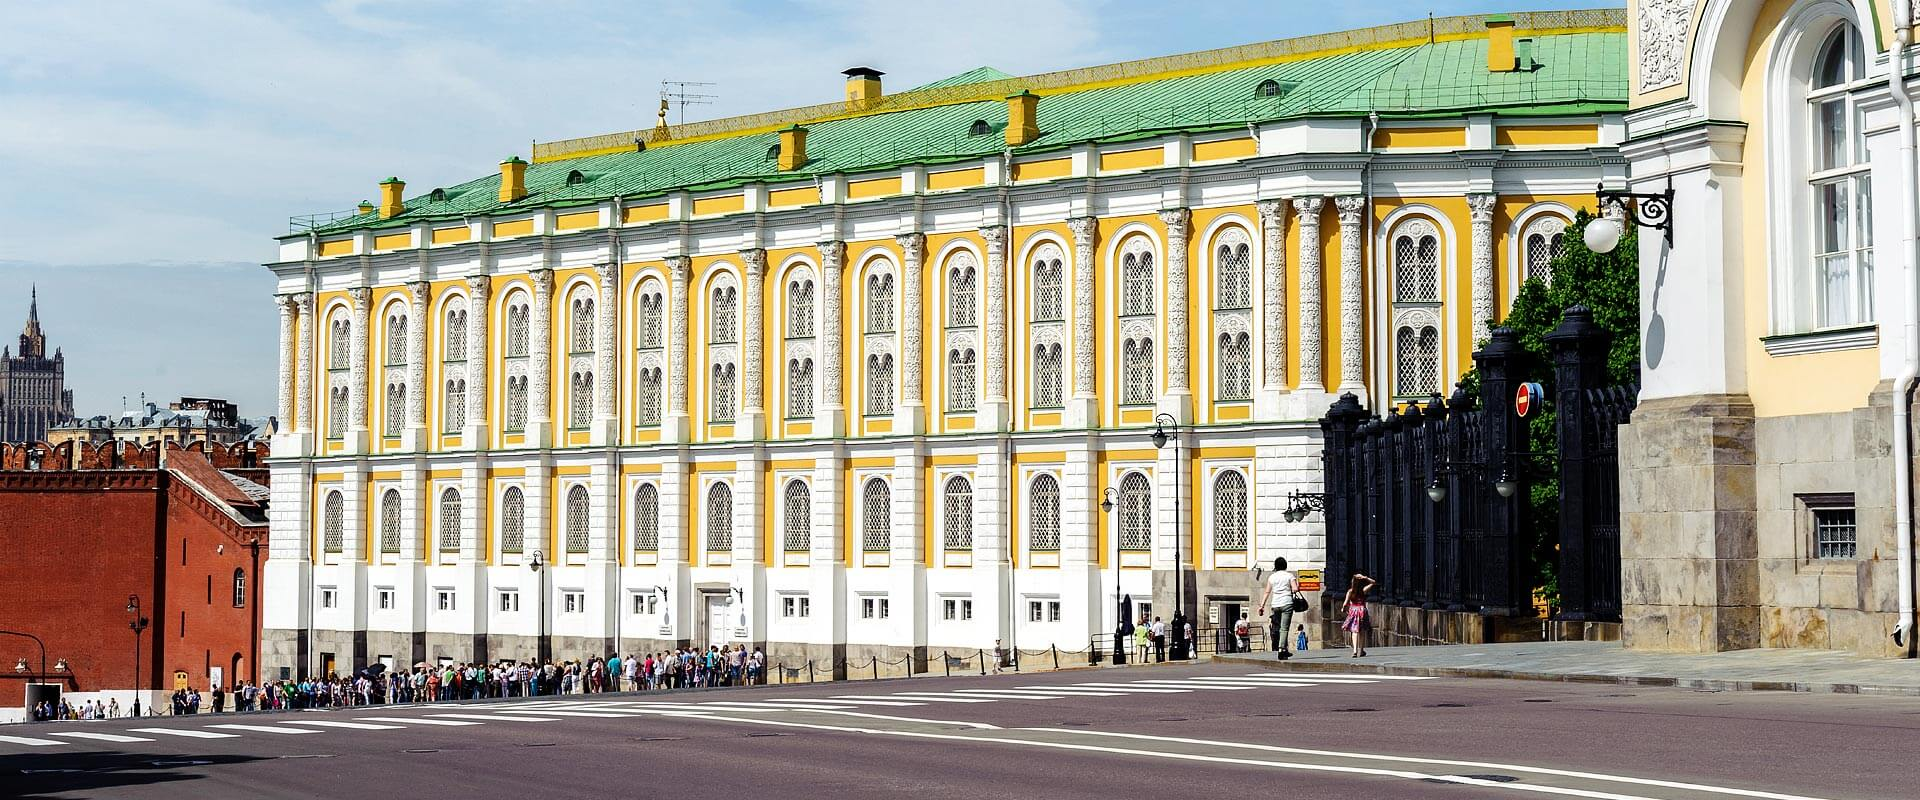 Armory Chamber Moscow, The Kremlin And The Armoury Chamber by Marc - GuideTrip.com